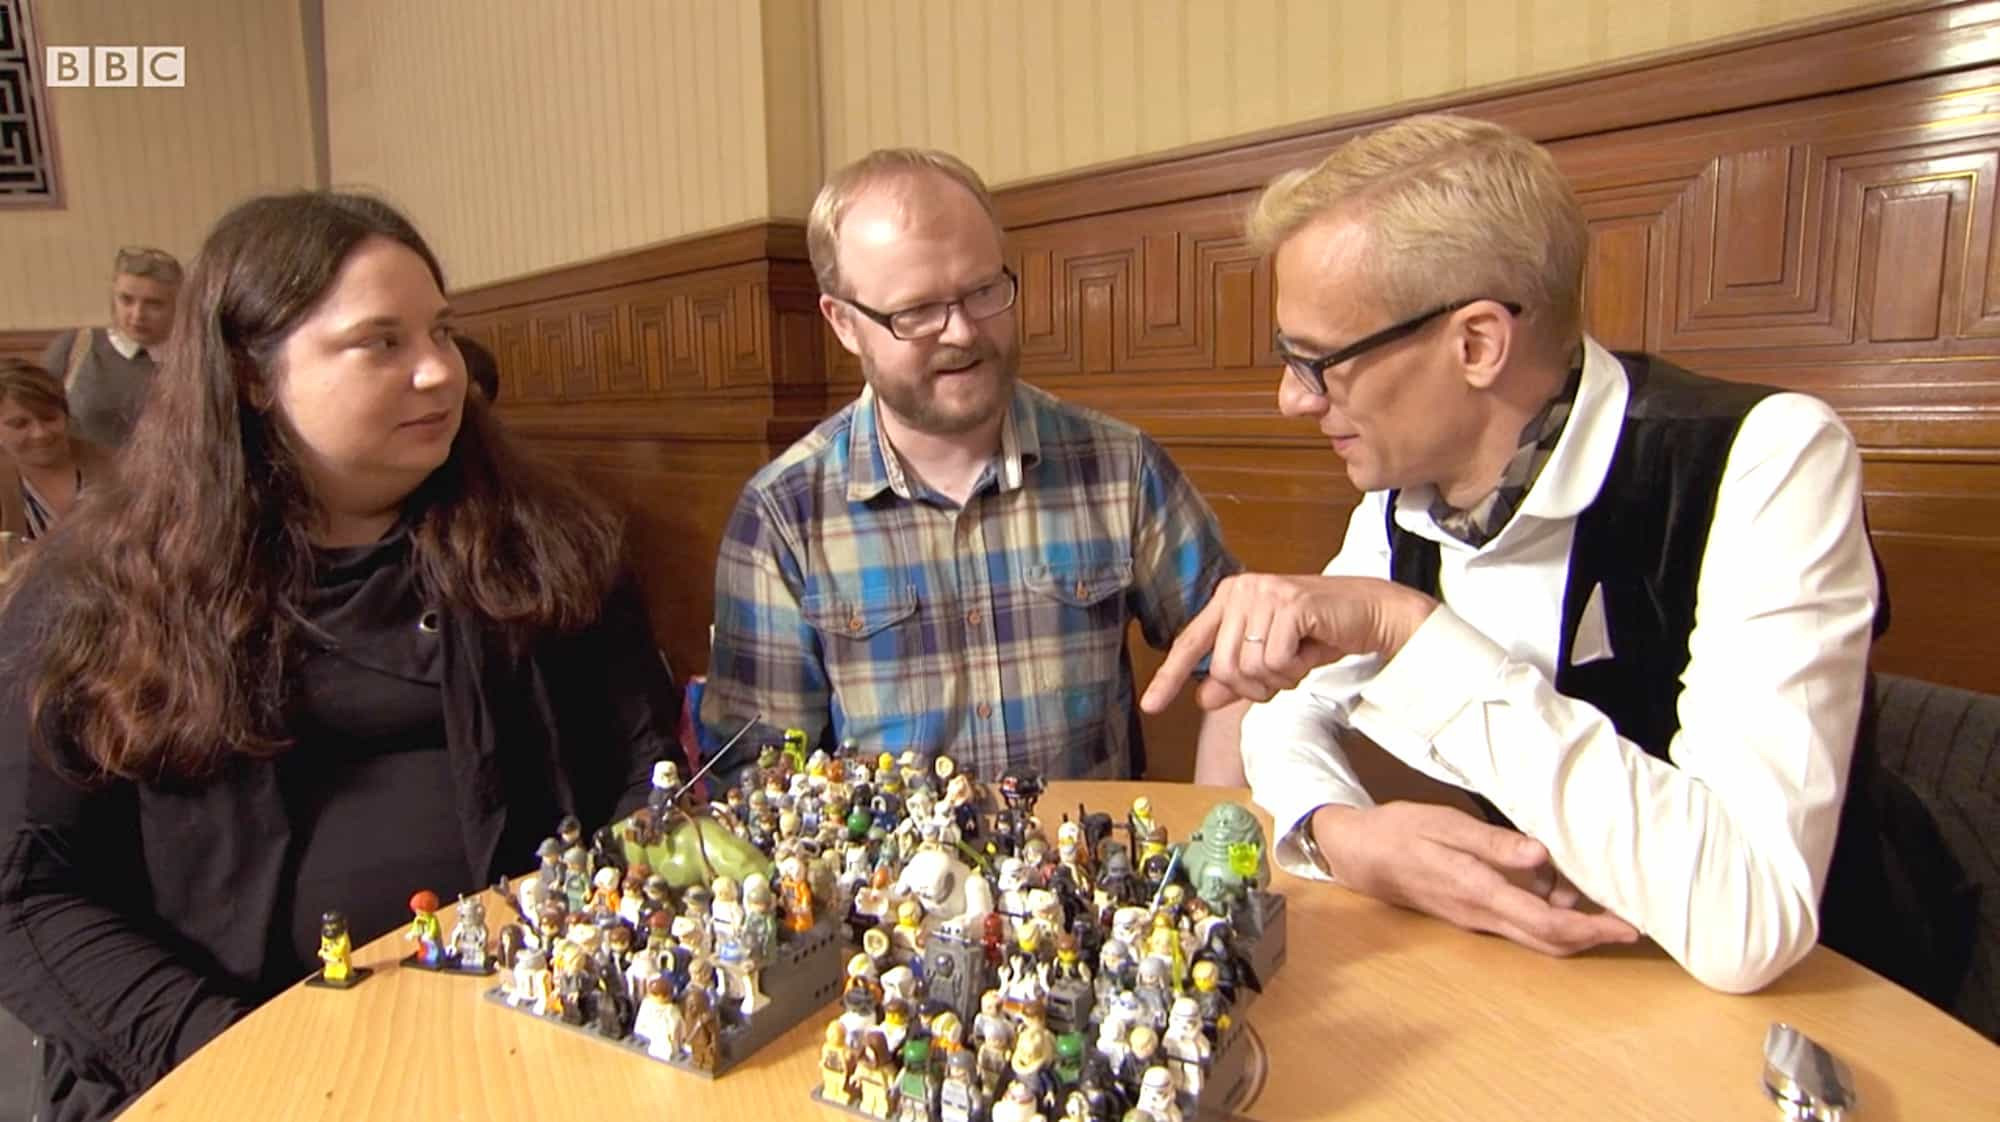 @Powerofthebrick on BBC Antiques Roadshow